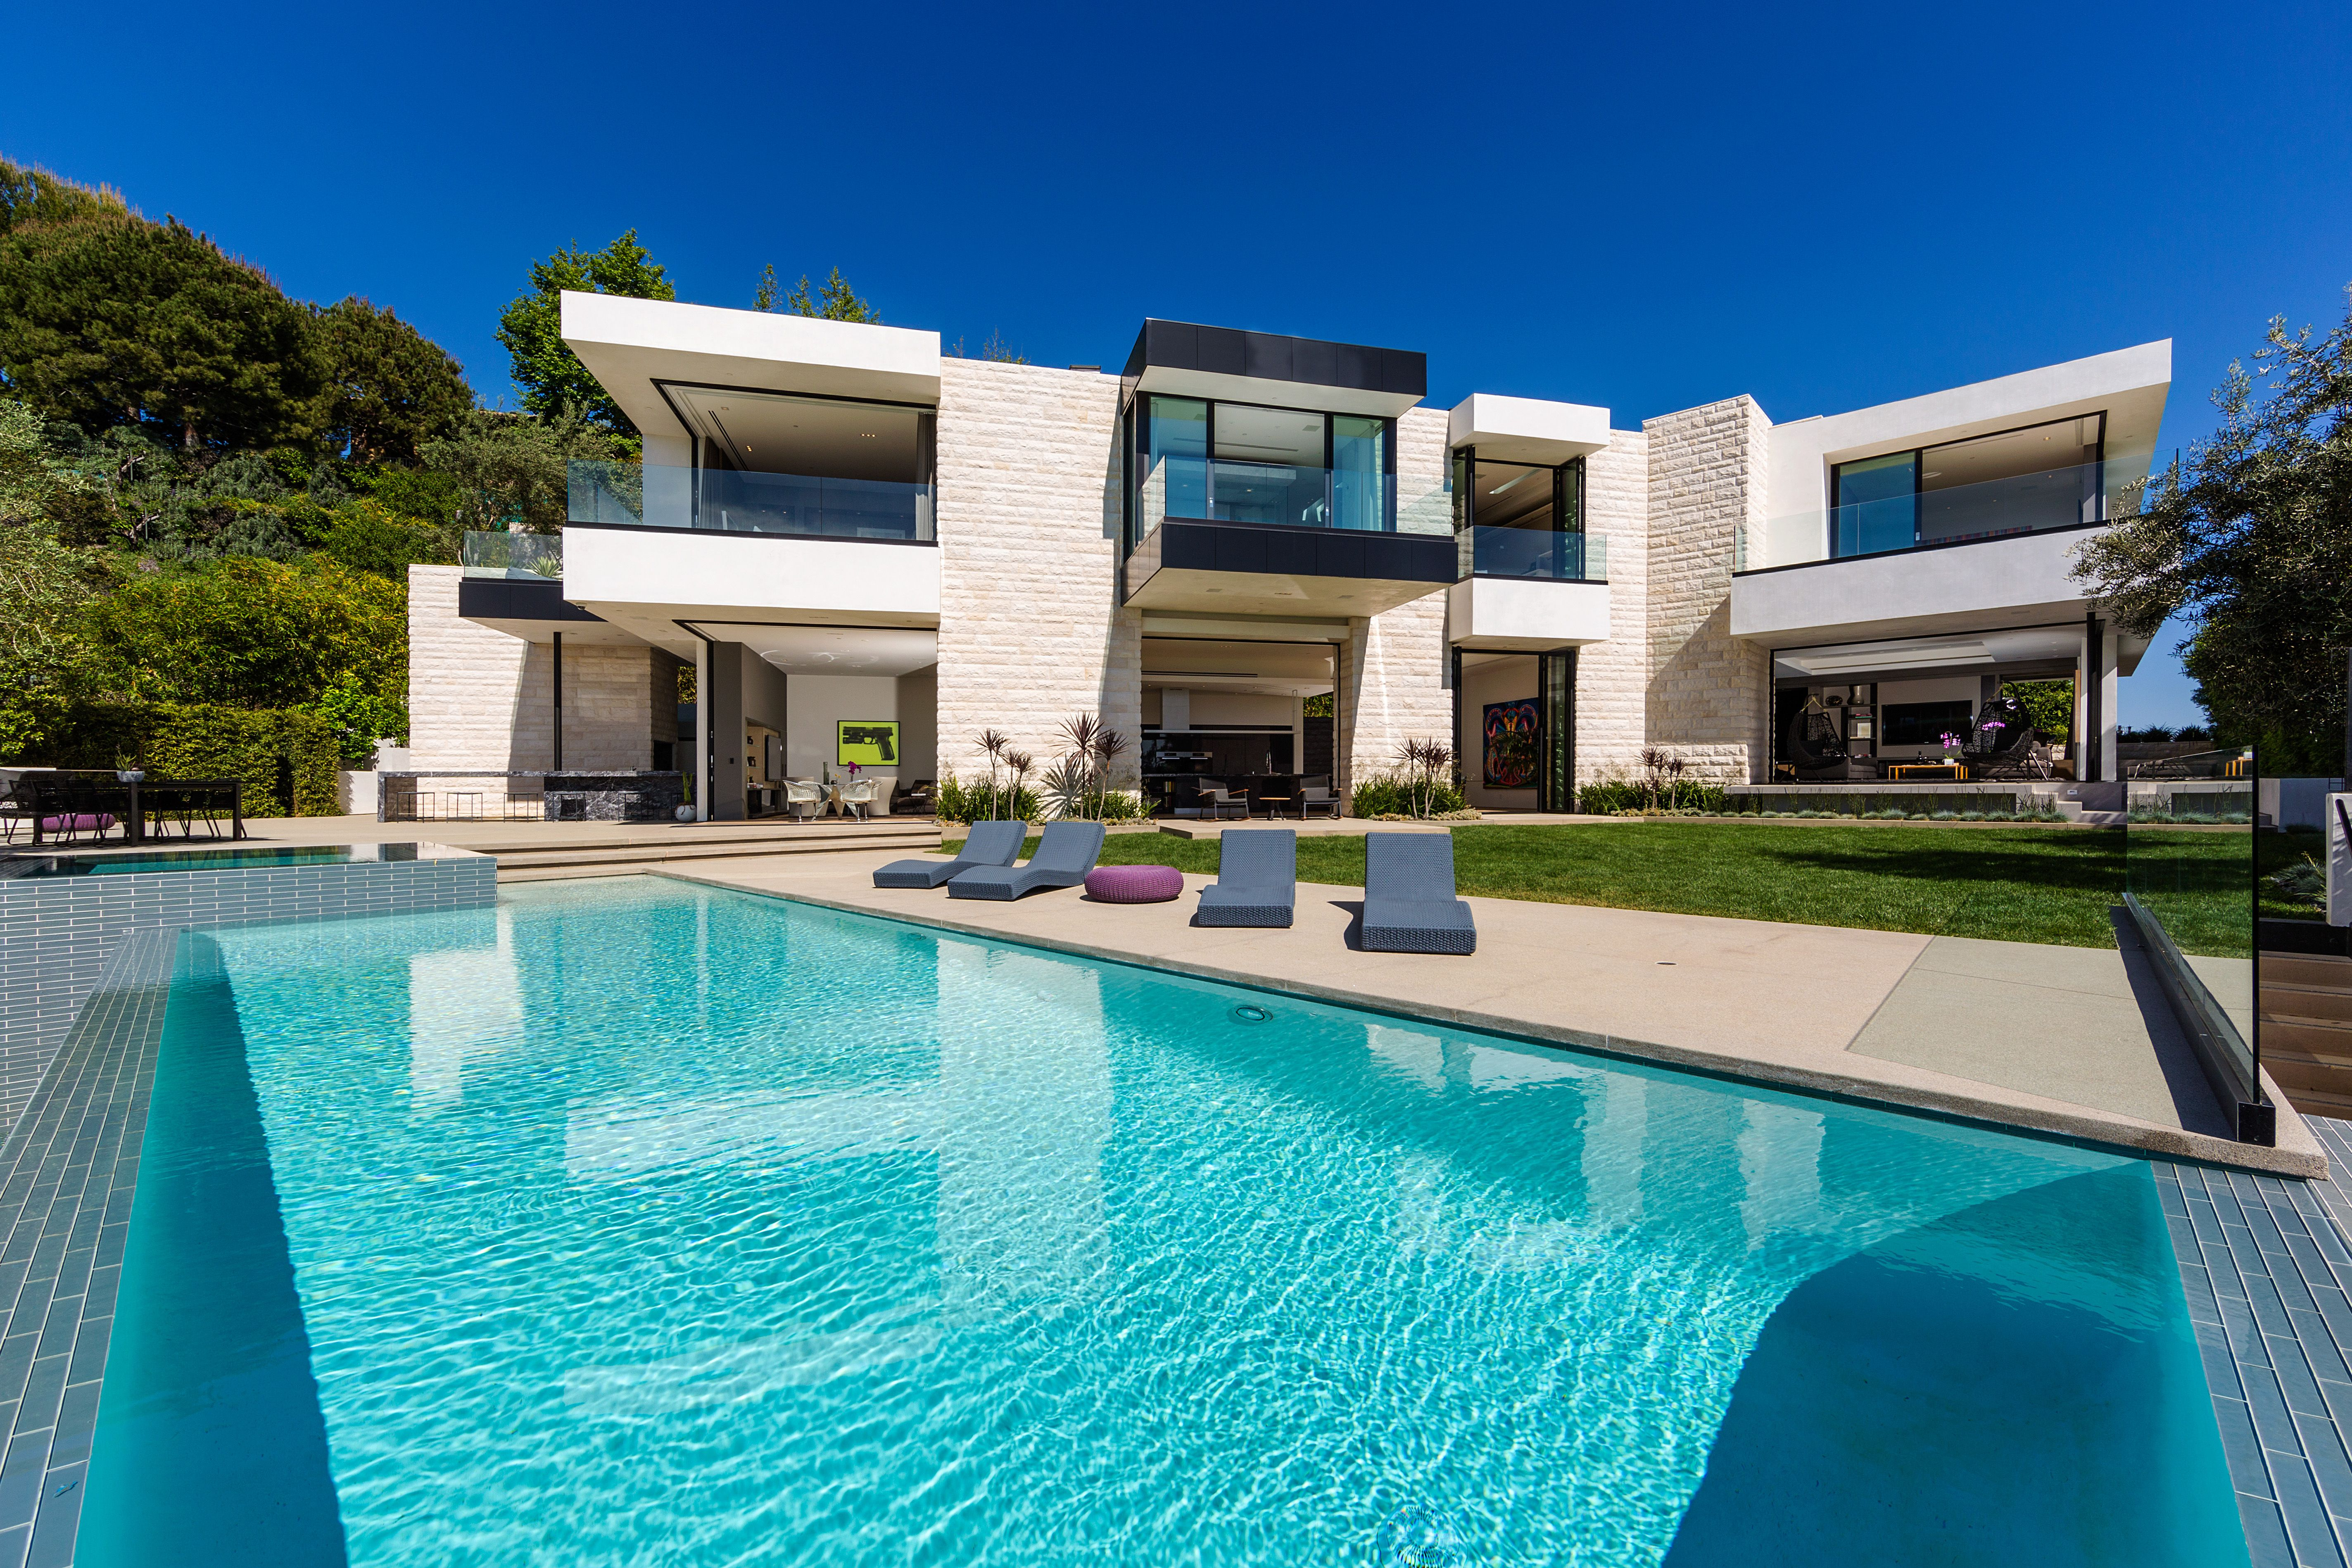 Luxury House Plans With Pools 33 Little Known Facts About Leonardo Dicaprio Page 6 Of 6